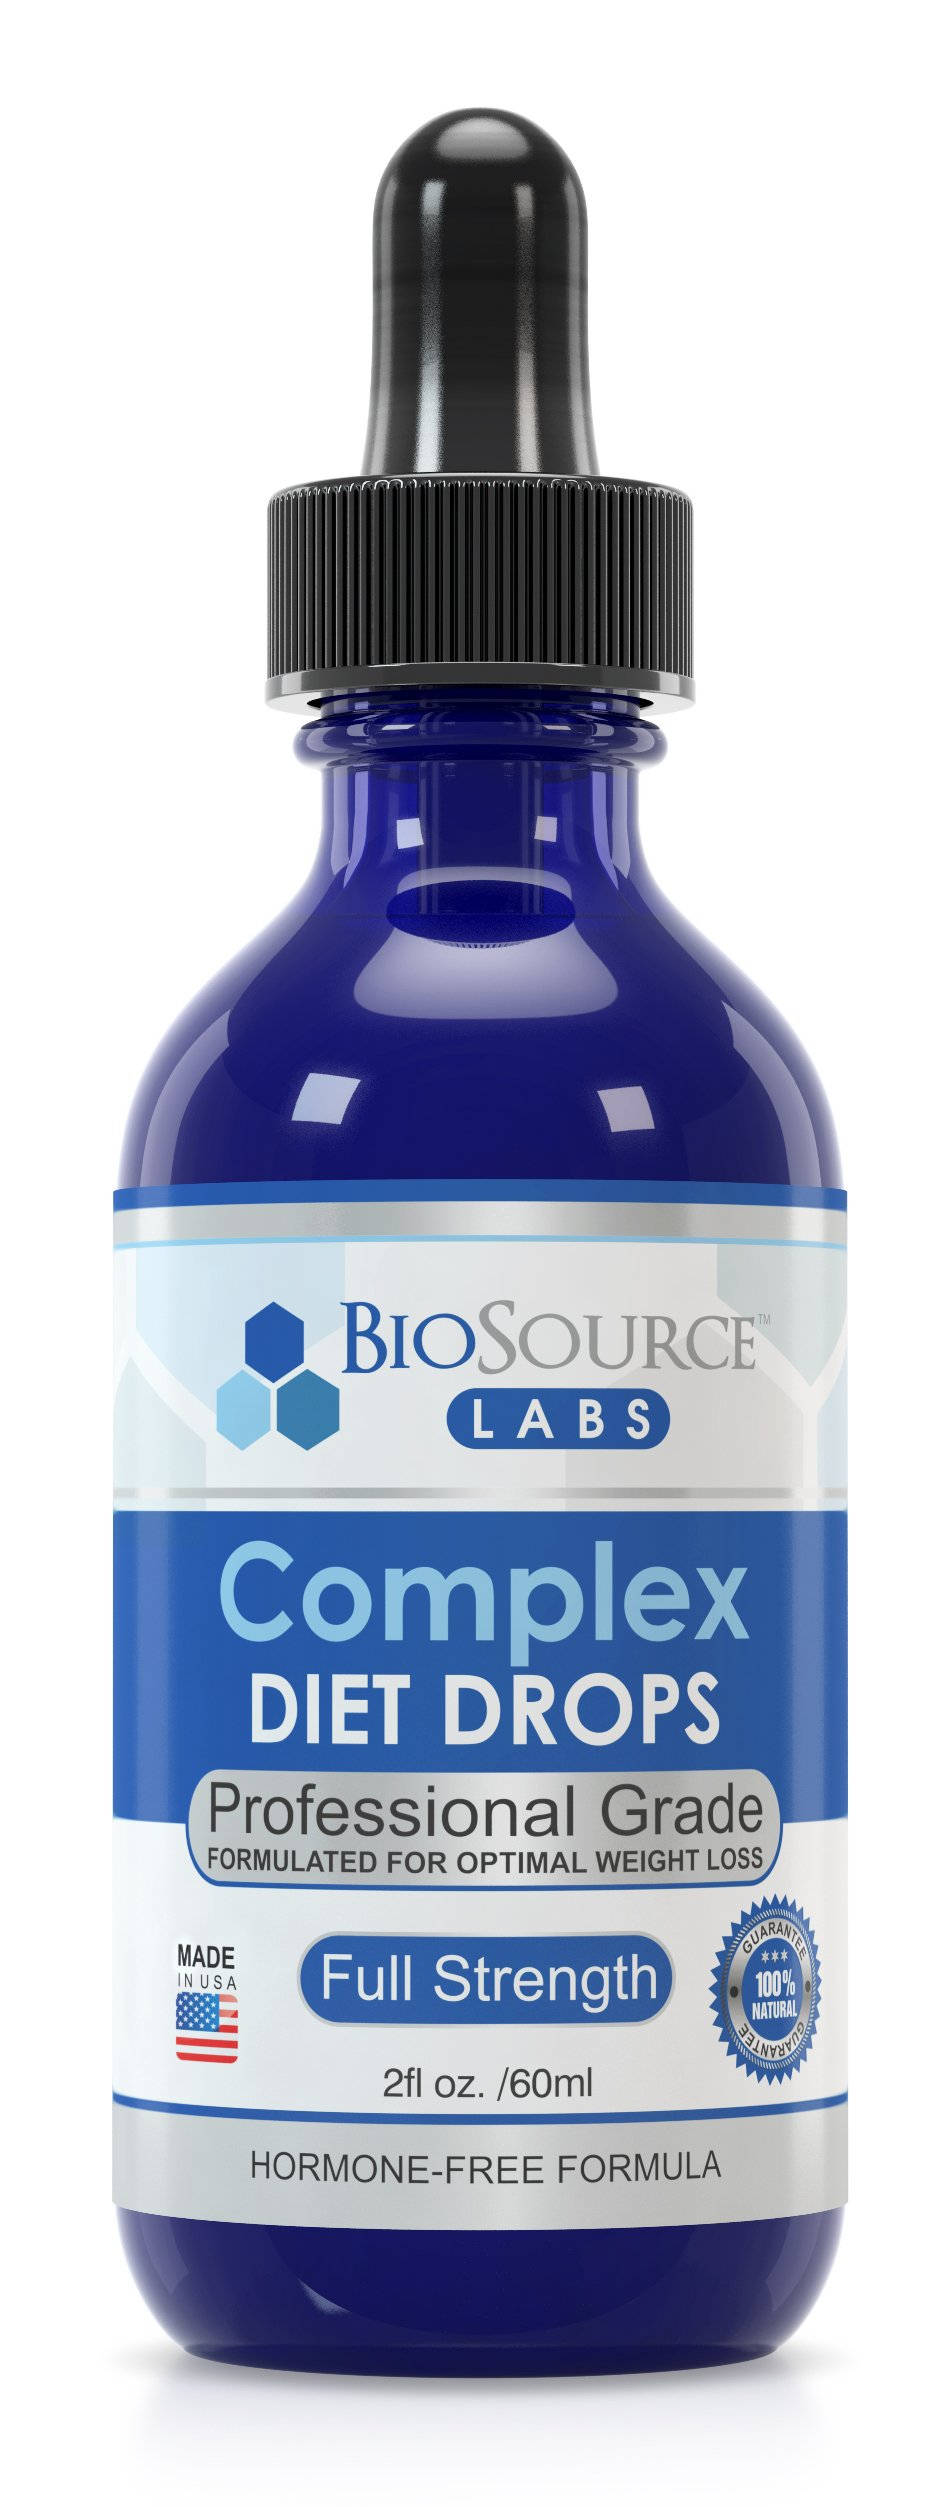 BioSource Labs Complex Diet Drops: Lean Weight Loss Drops for Rapid Weight Loss| Slenderizing Drops to Boost Your Weight Loss Meal Plan| Best Natural Metabolism Booster for Men & Women| 2 oz Bottle by BioSource Labs